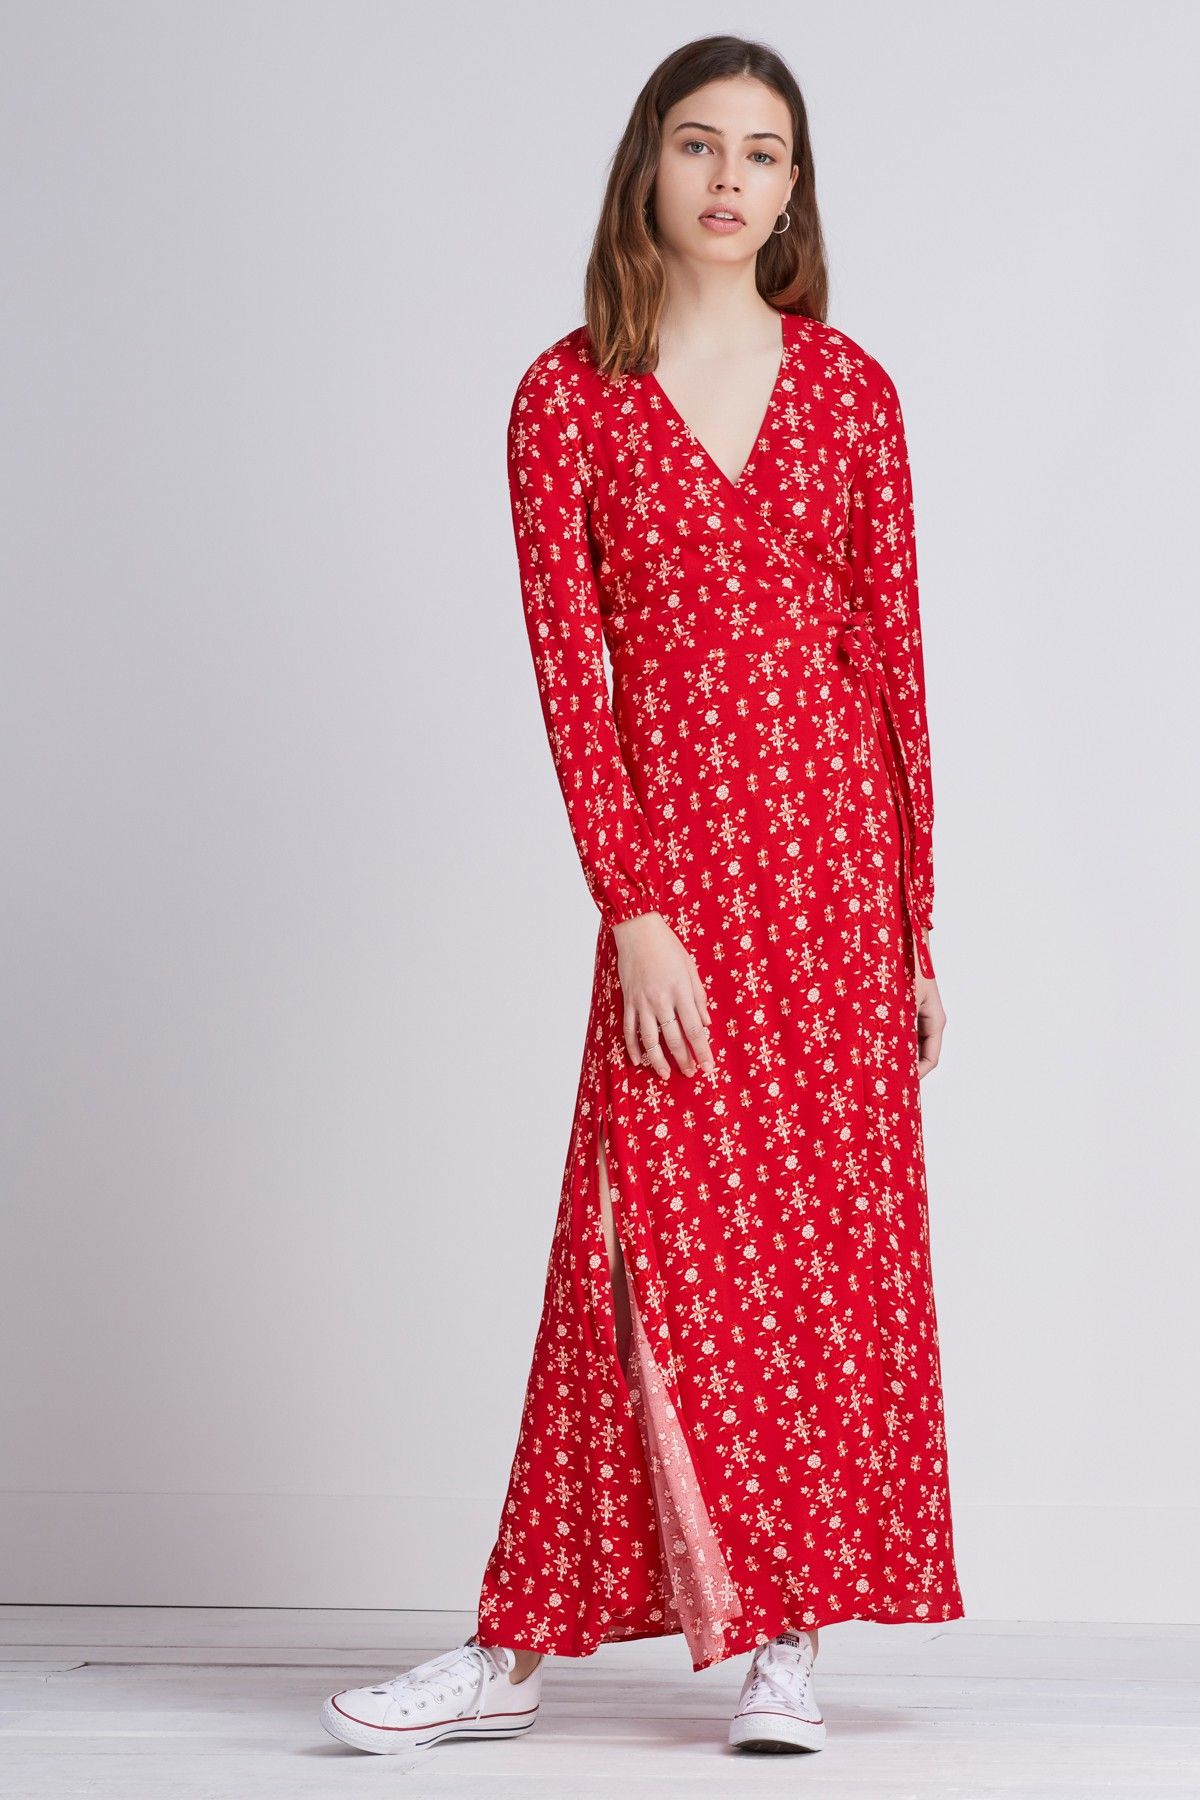 The fifth return to paradise long sleeve dress new arrivals